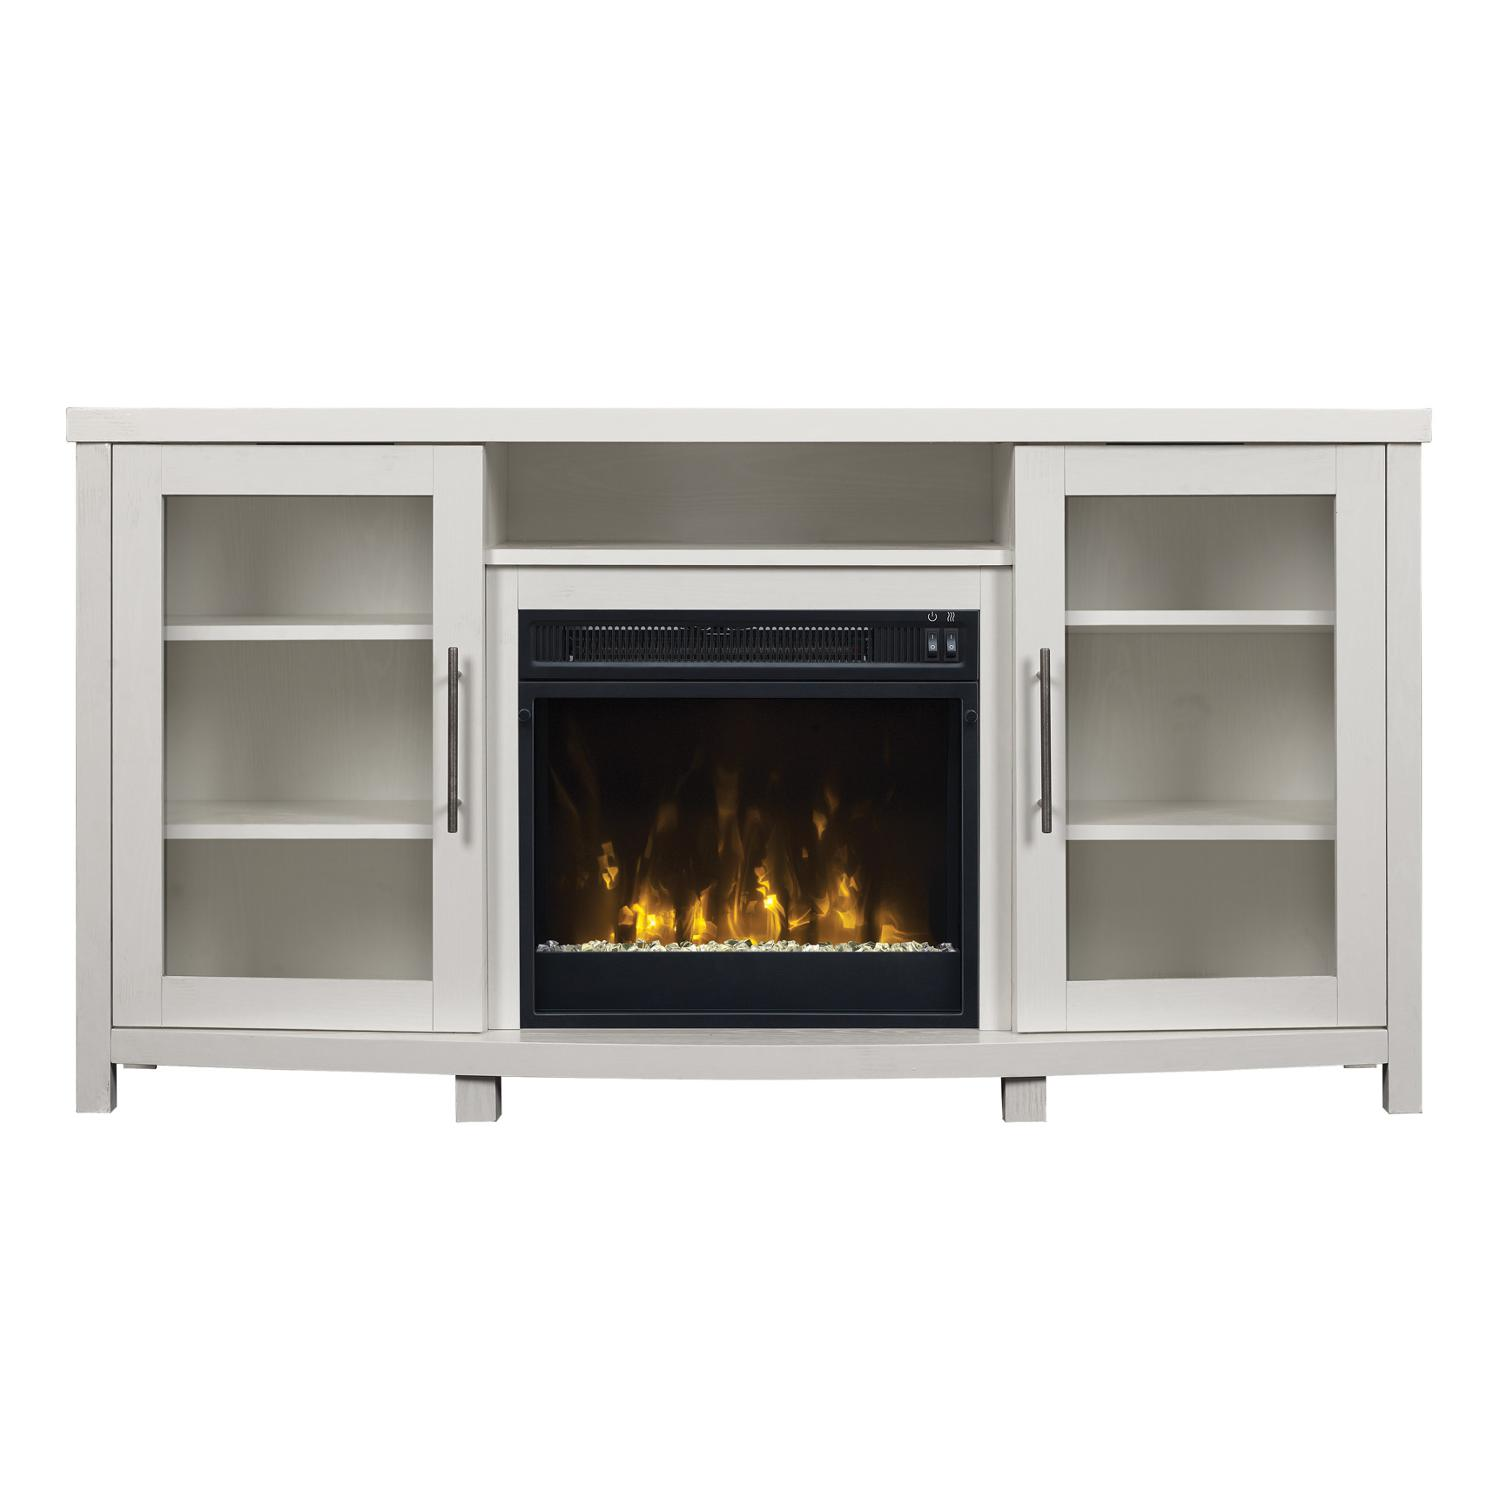 "Classicflame Rossville 54"" Tv Stand With Electric Fireplace - Pure White - 18mm6036-pt85s"